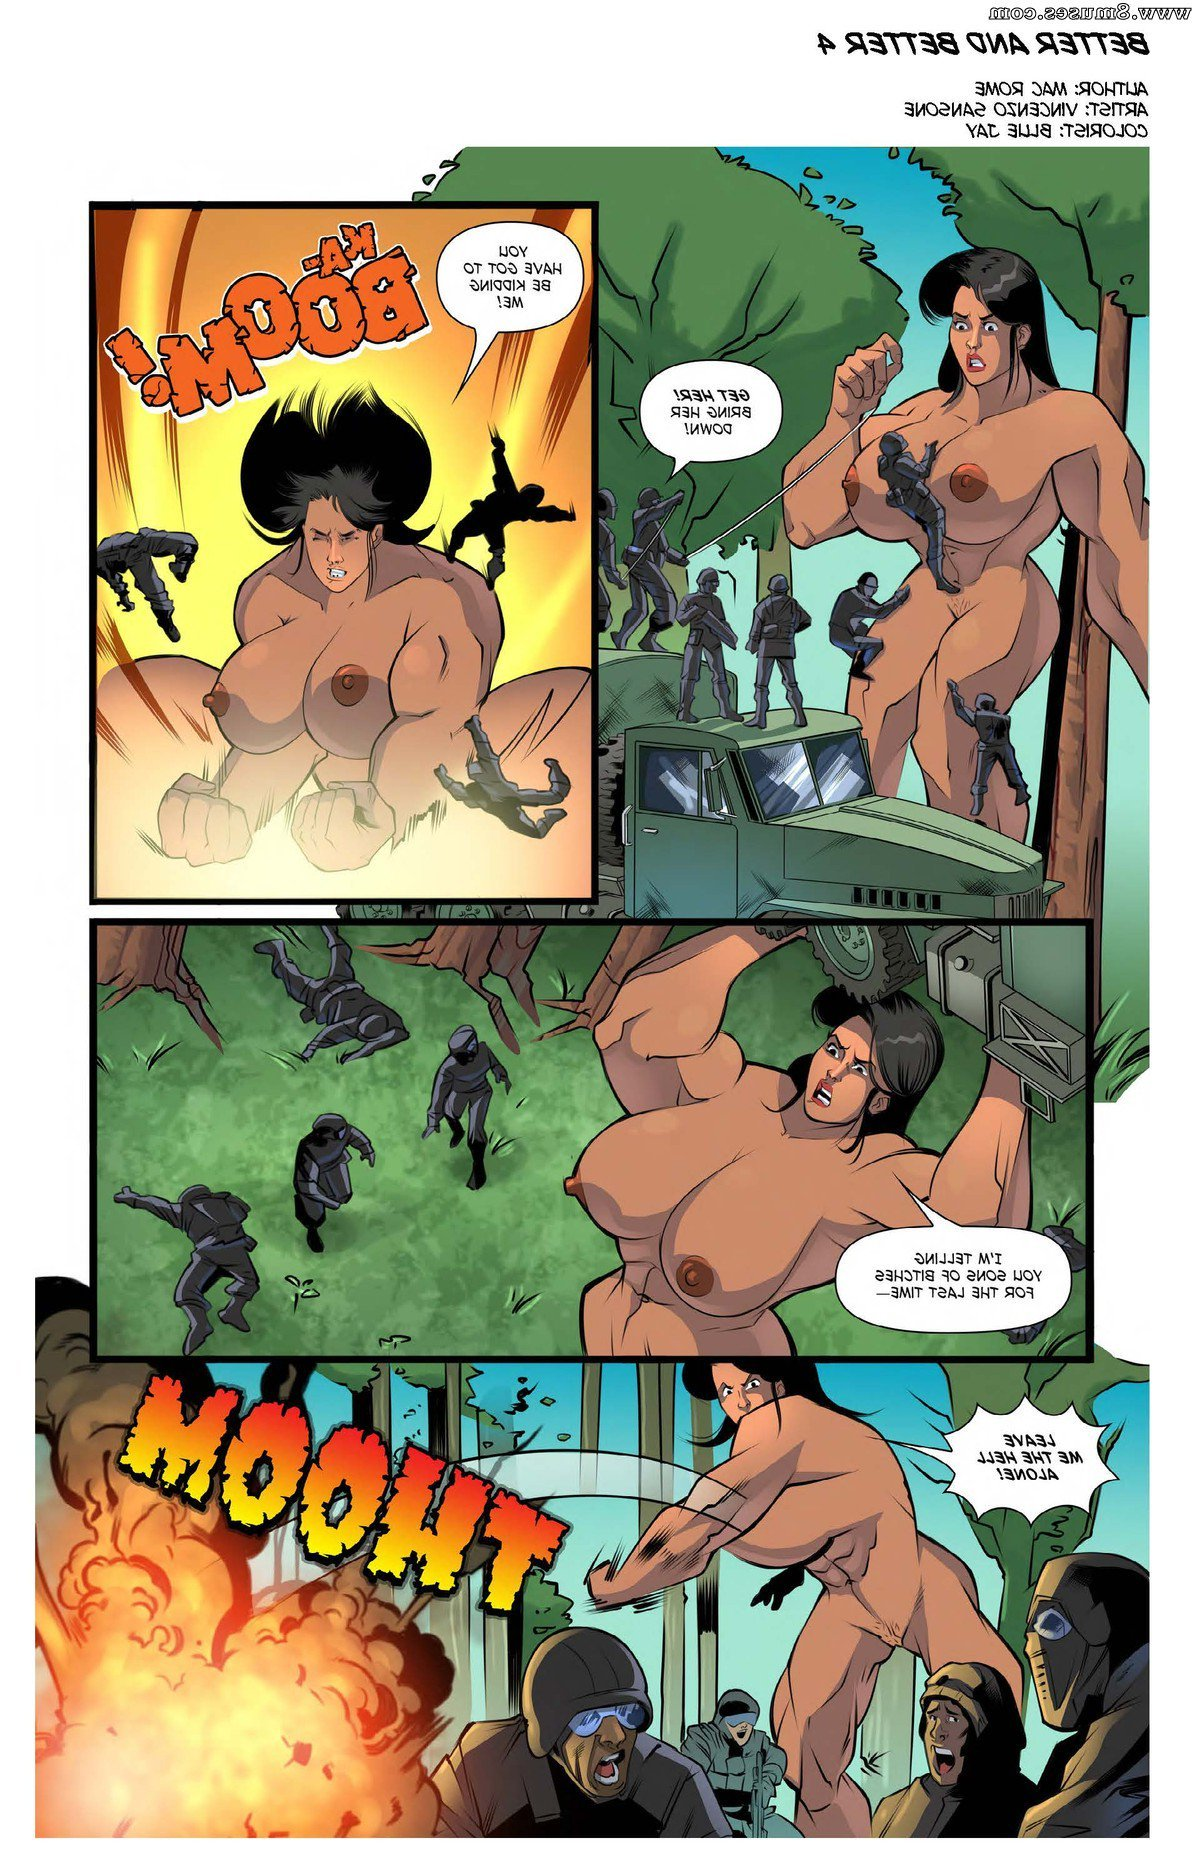 MuscleFan-Comics/A-Touch-of-the-Vapours/Issue-1 A_Touch_of_the_Vapours_-_Issue_1_15.jpg